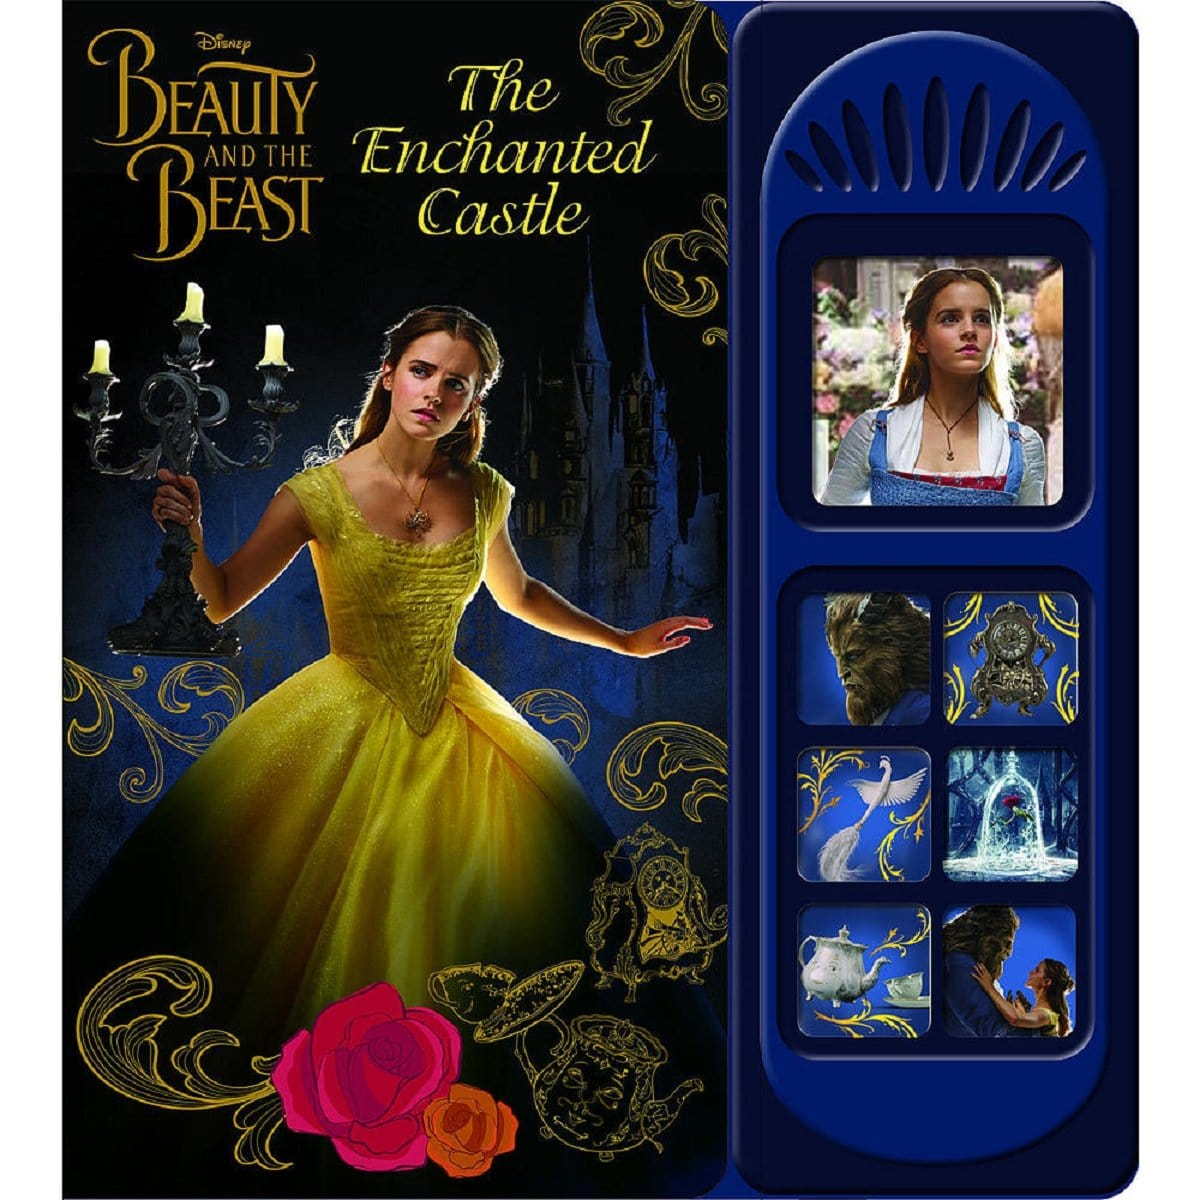 Beauty and the Beast – The Enchanted Castle